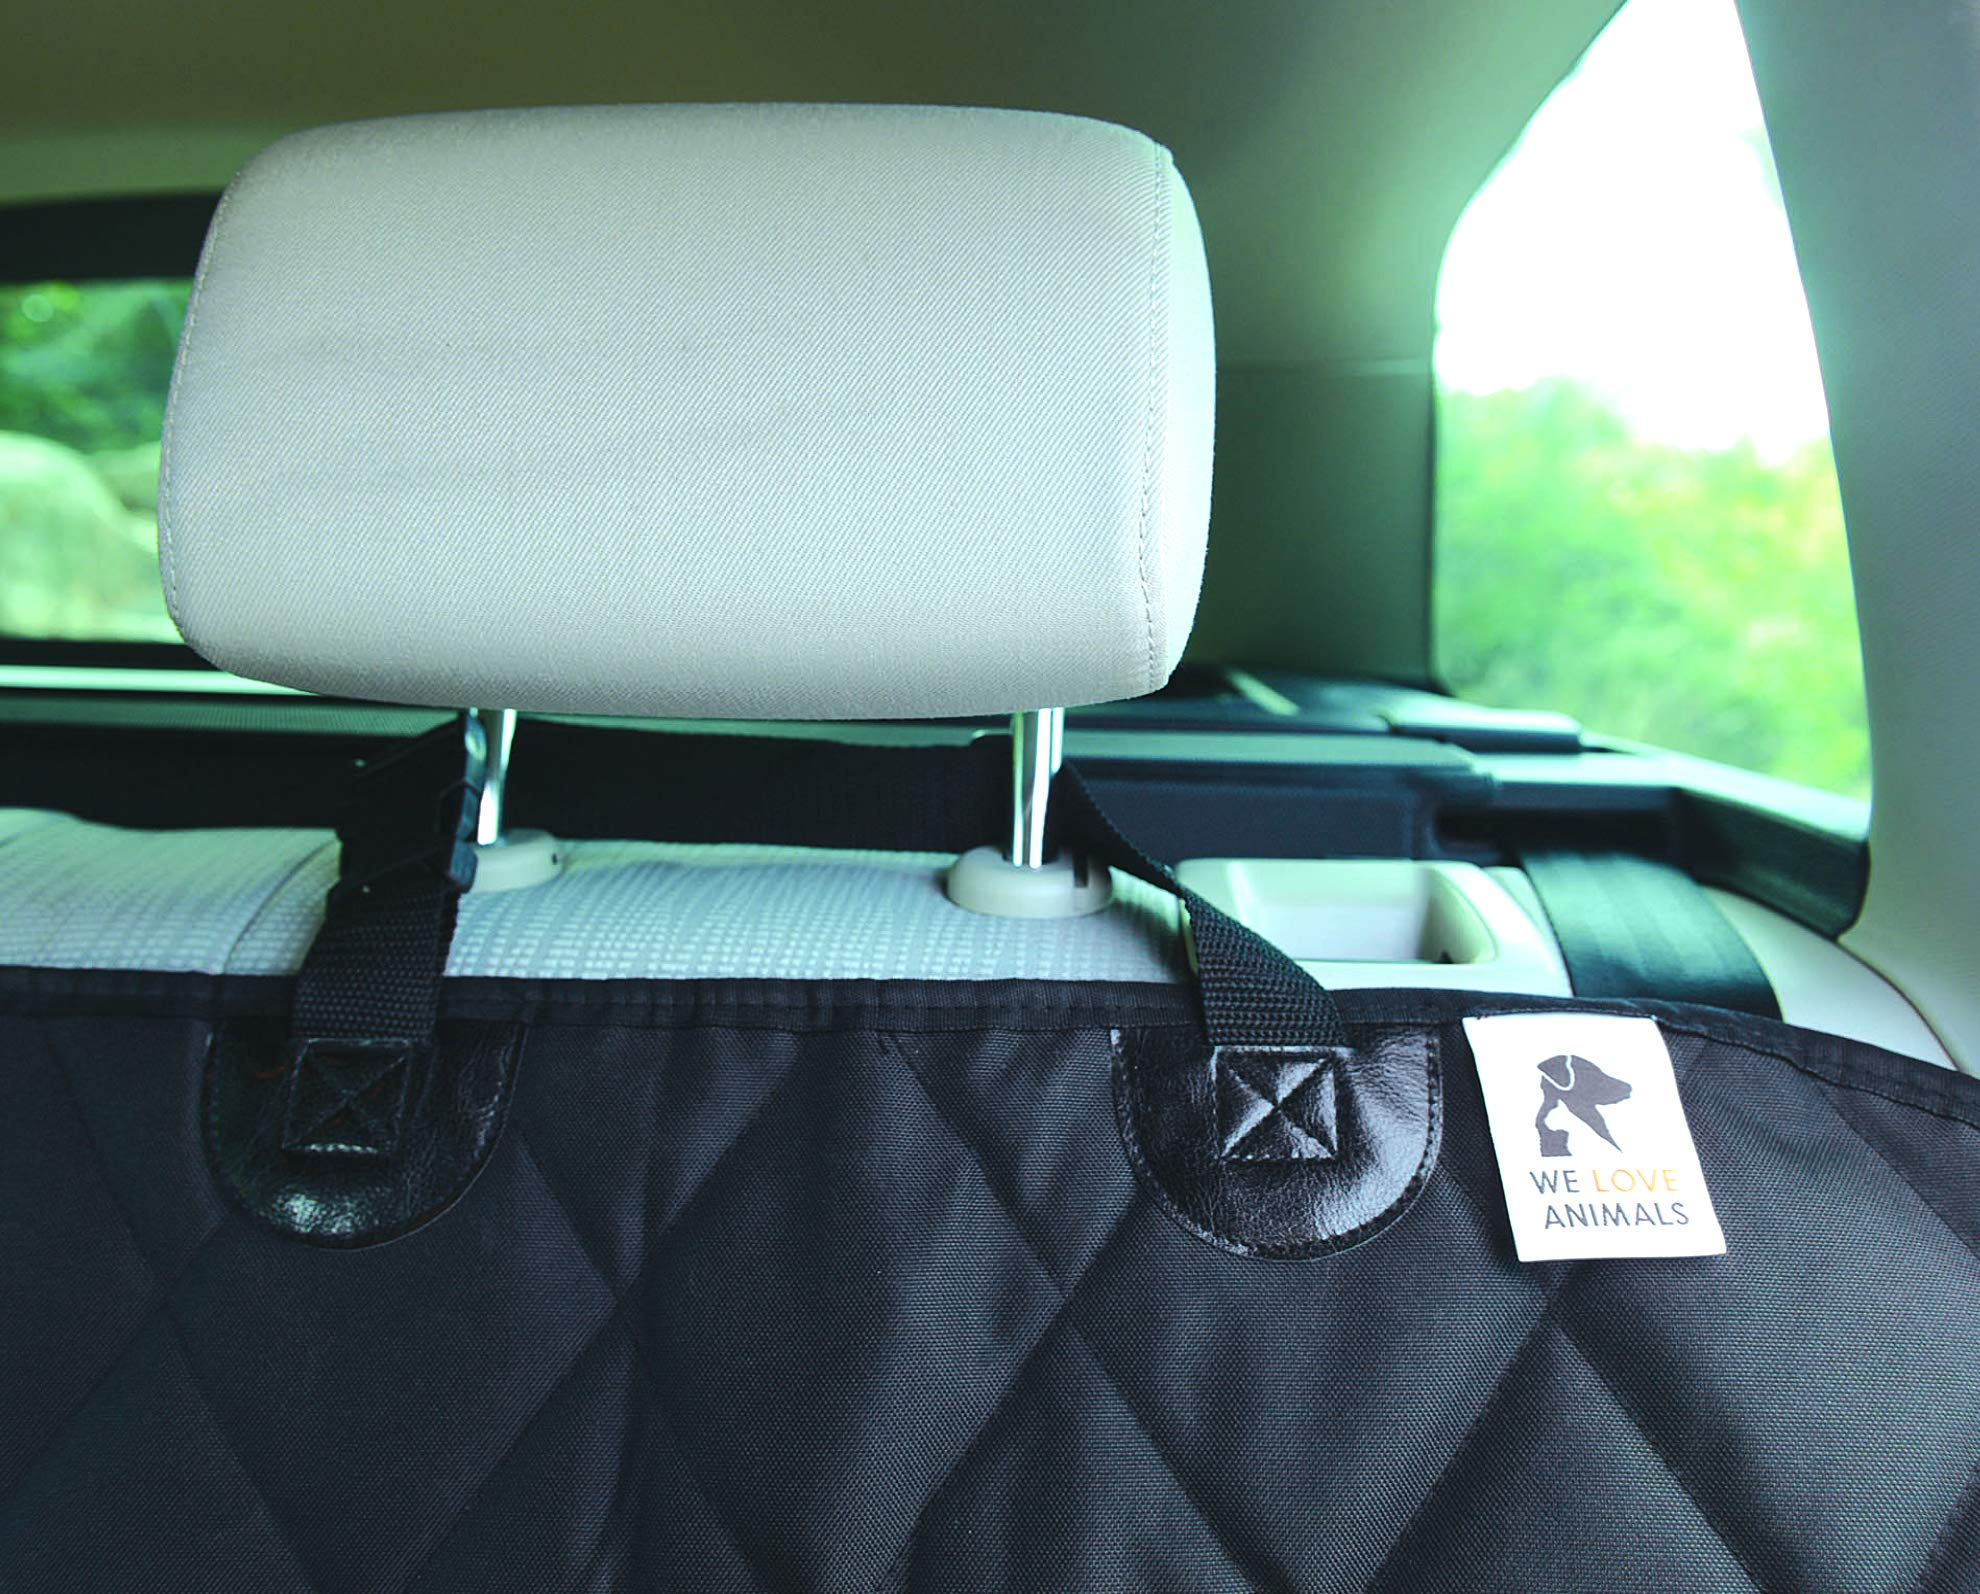 Dog-Car-Seat-Cover-Cargo-Liner-rear-Bench-Convertible-Hammock-Shaped-Comfort-Accessory-for-Cars-SUVs-Trucks-Carriers-Waterproof-Nonslip-Washable-Pet-Backseat-Protector-Pets-Blanket-Bag